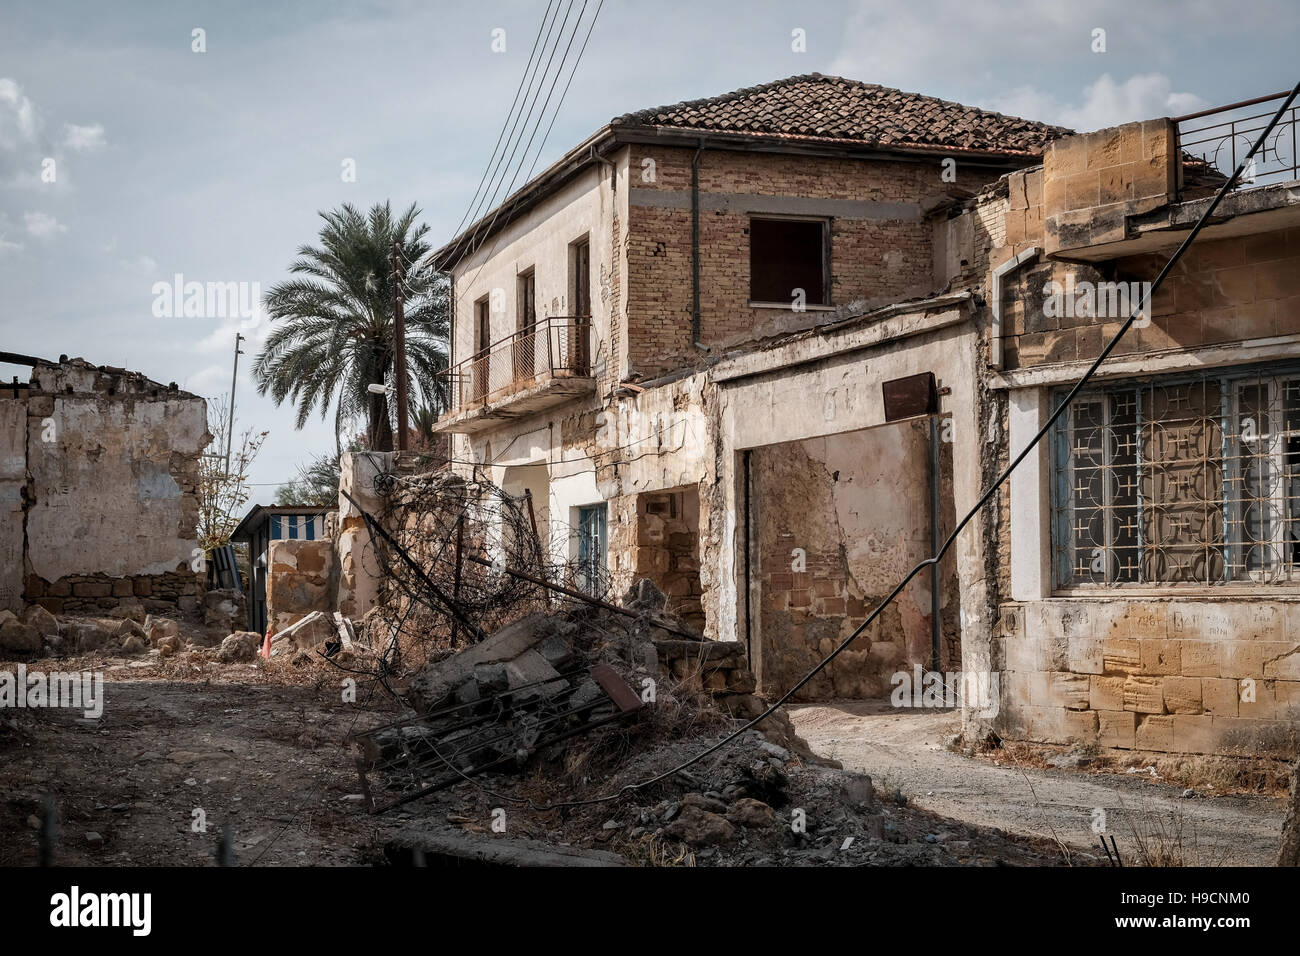 An abandoned street in the UN buffer zone between Greek Cypriot and Turkish Cypriot areas in Nicosia, Cyprus. - Stock Image